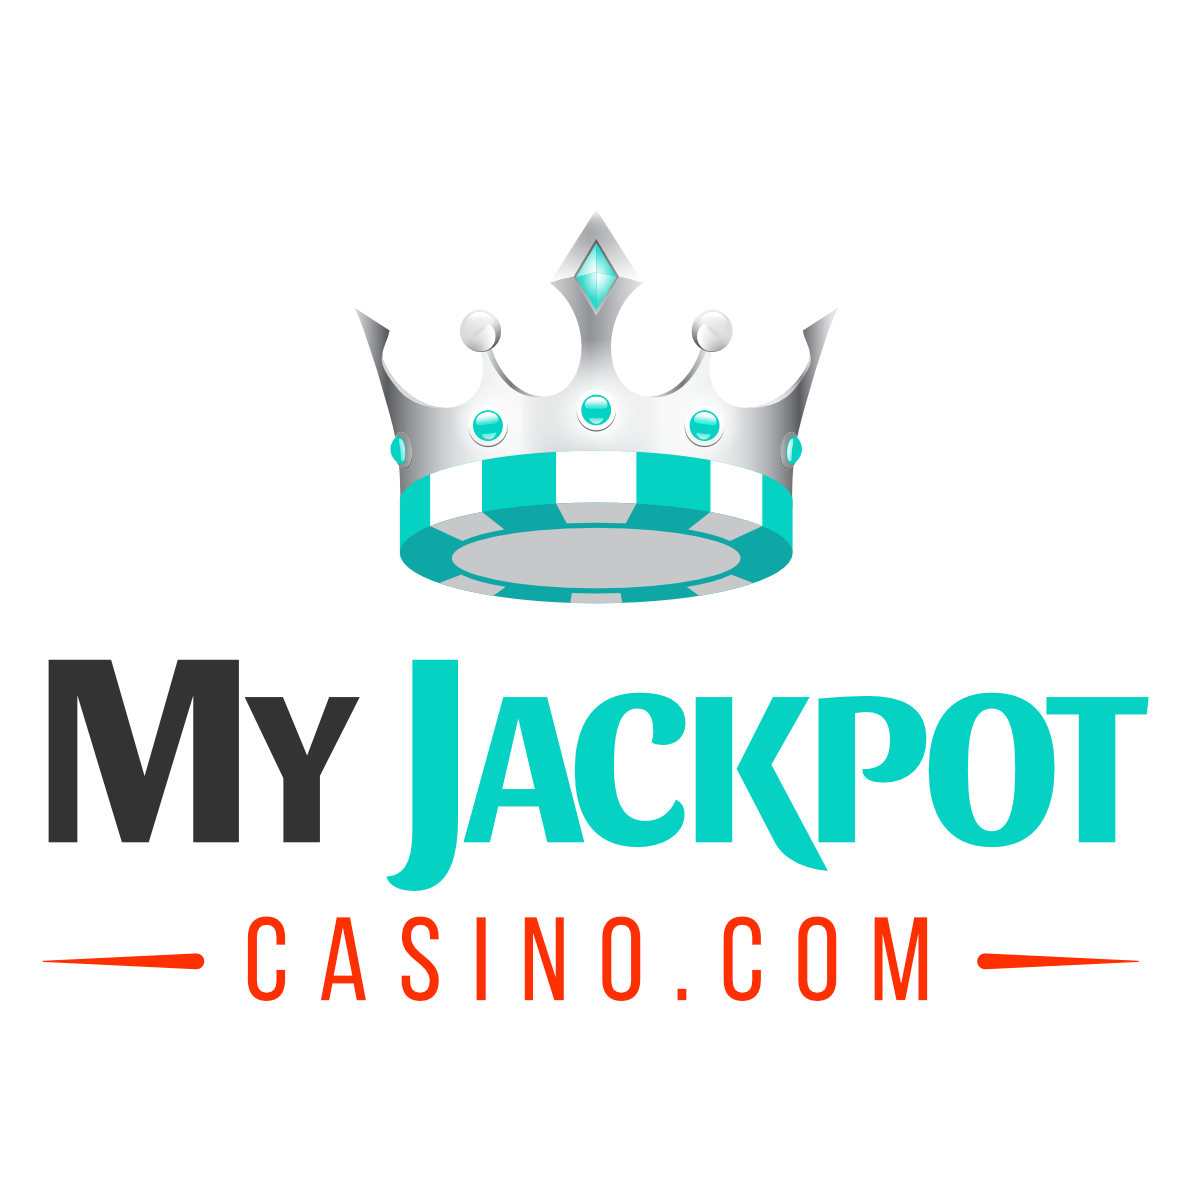 http://www.onlinecasino.tl/wp-content/uploads/2017/01/myjackpotcasino-logo-1.png